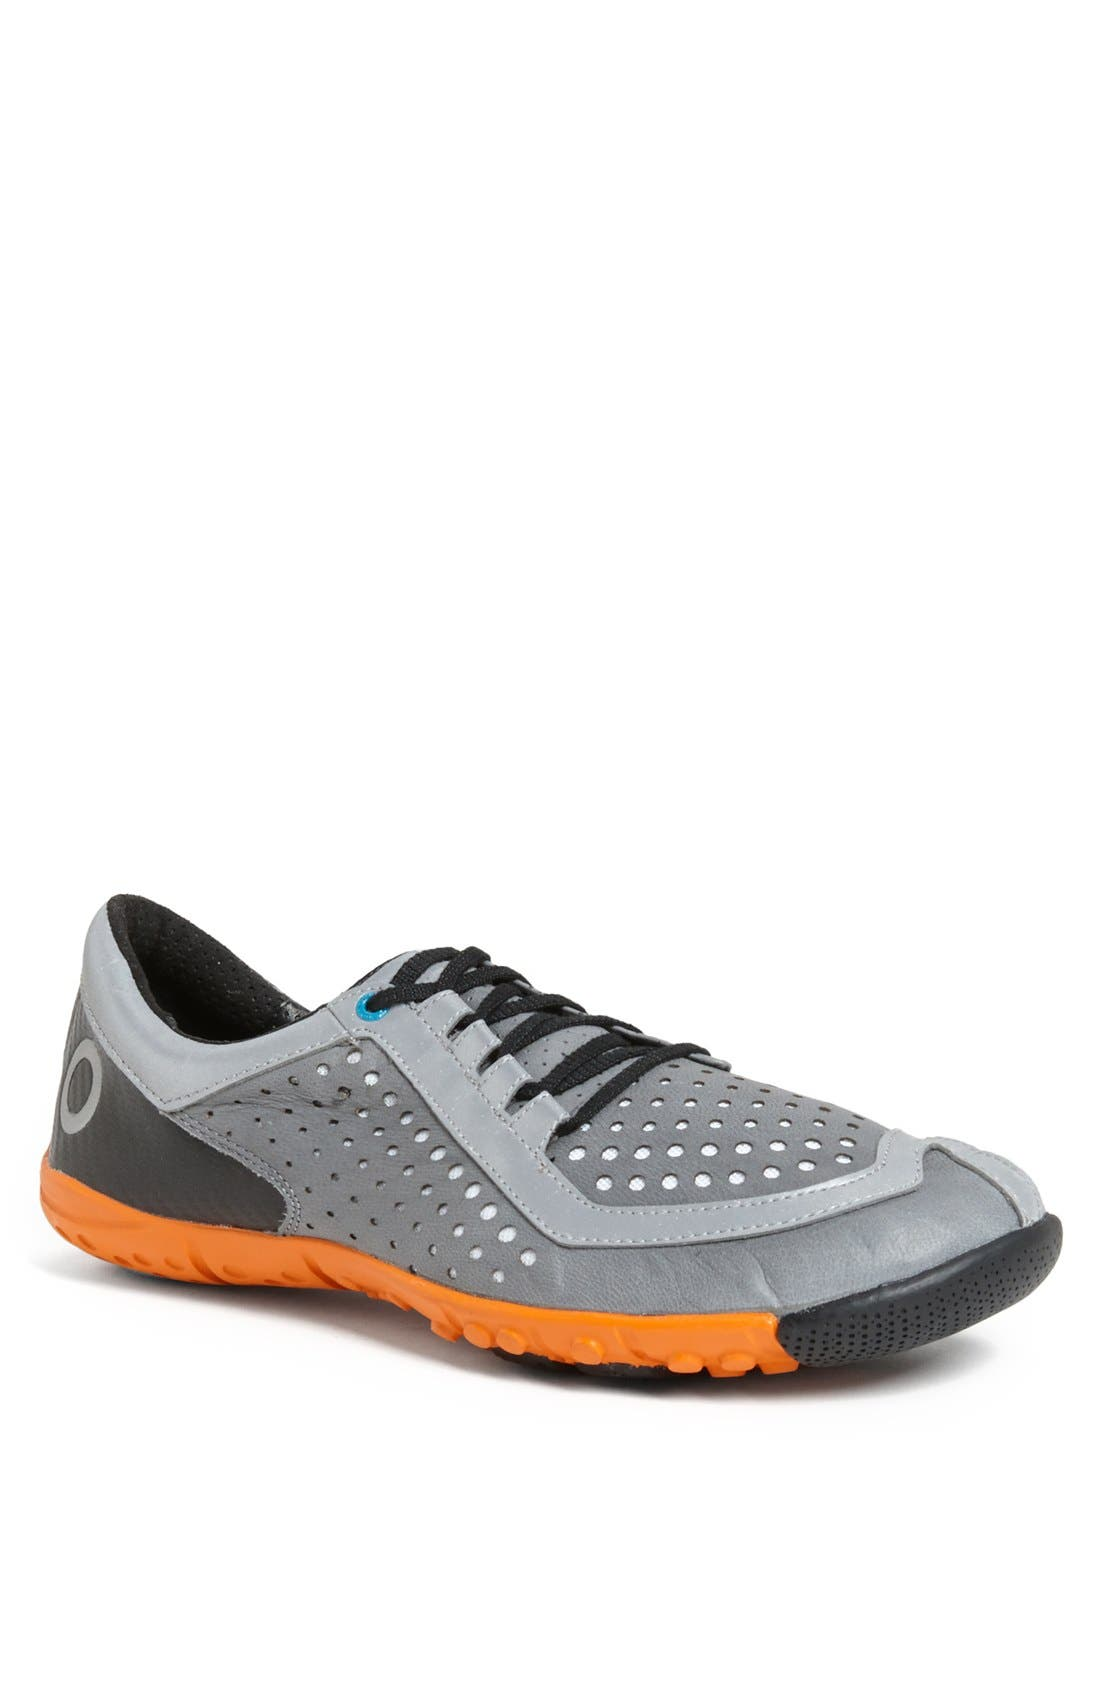 SKORA 'CORE' Running Shoe, Main, color, 020